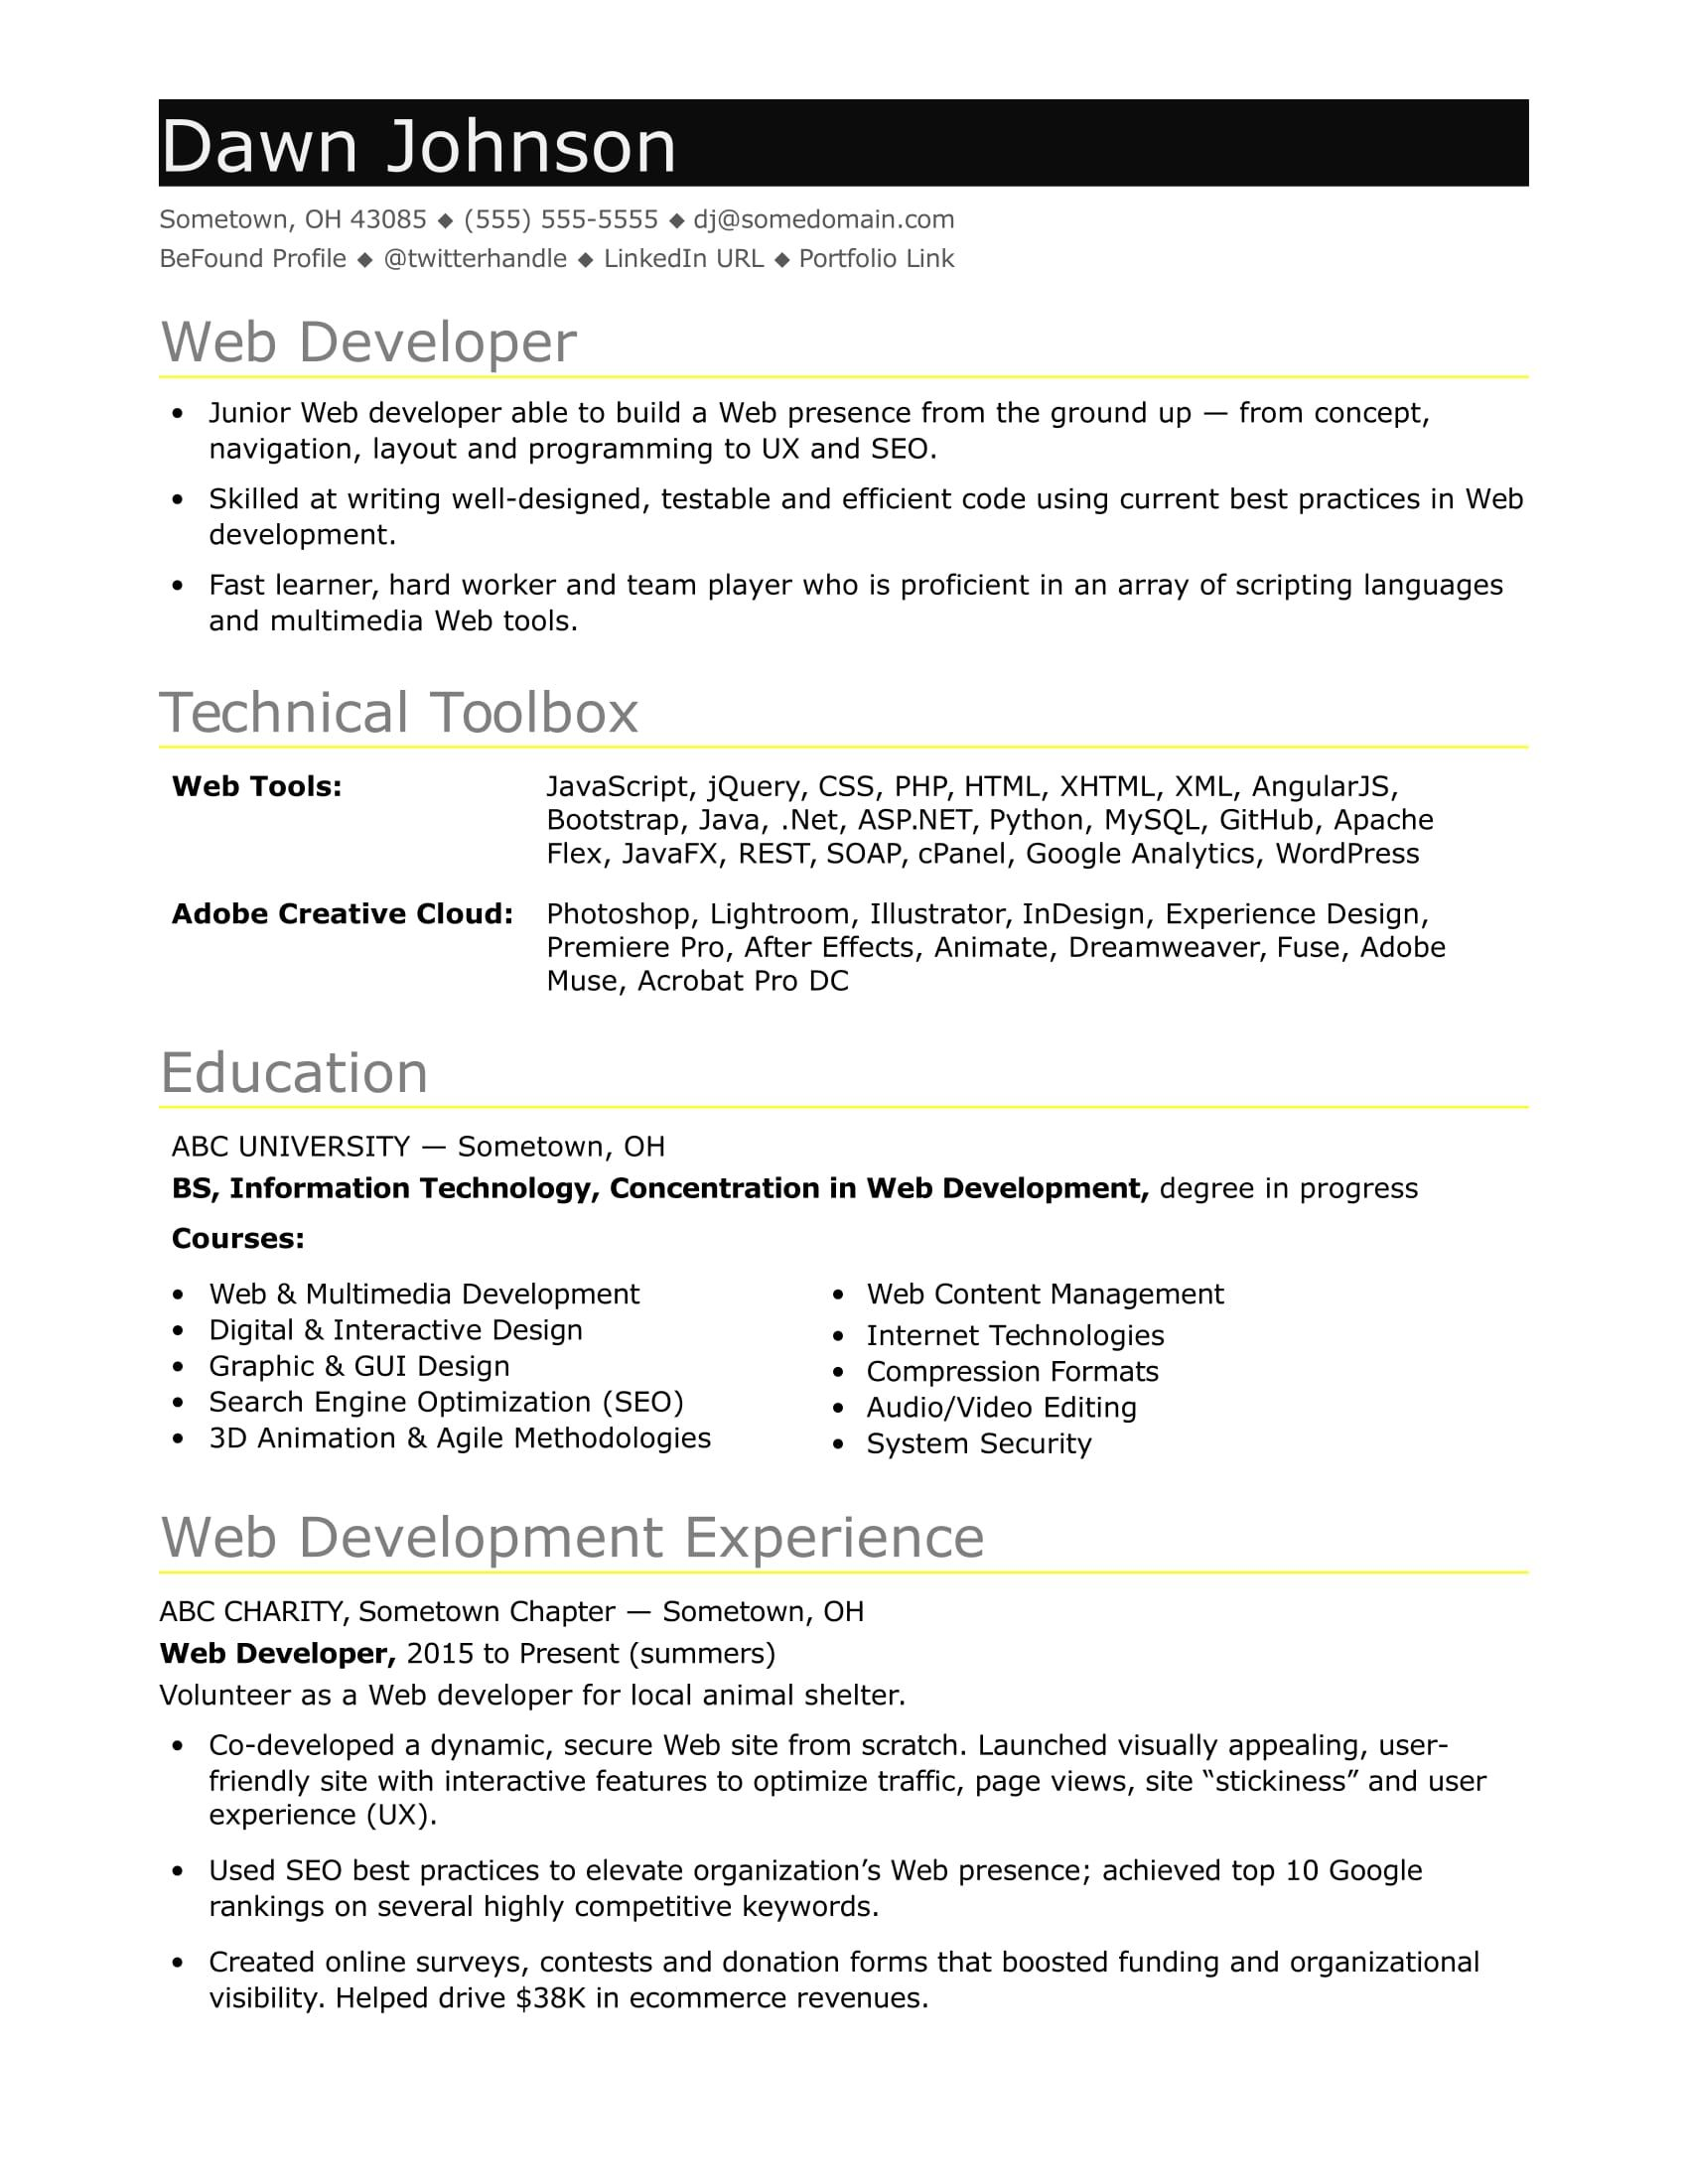 Progress Programmer Sample Resume If Your Web Sites Sizzle But Your Resume Fizzles Check Out This .